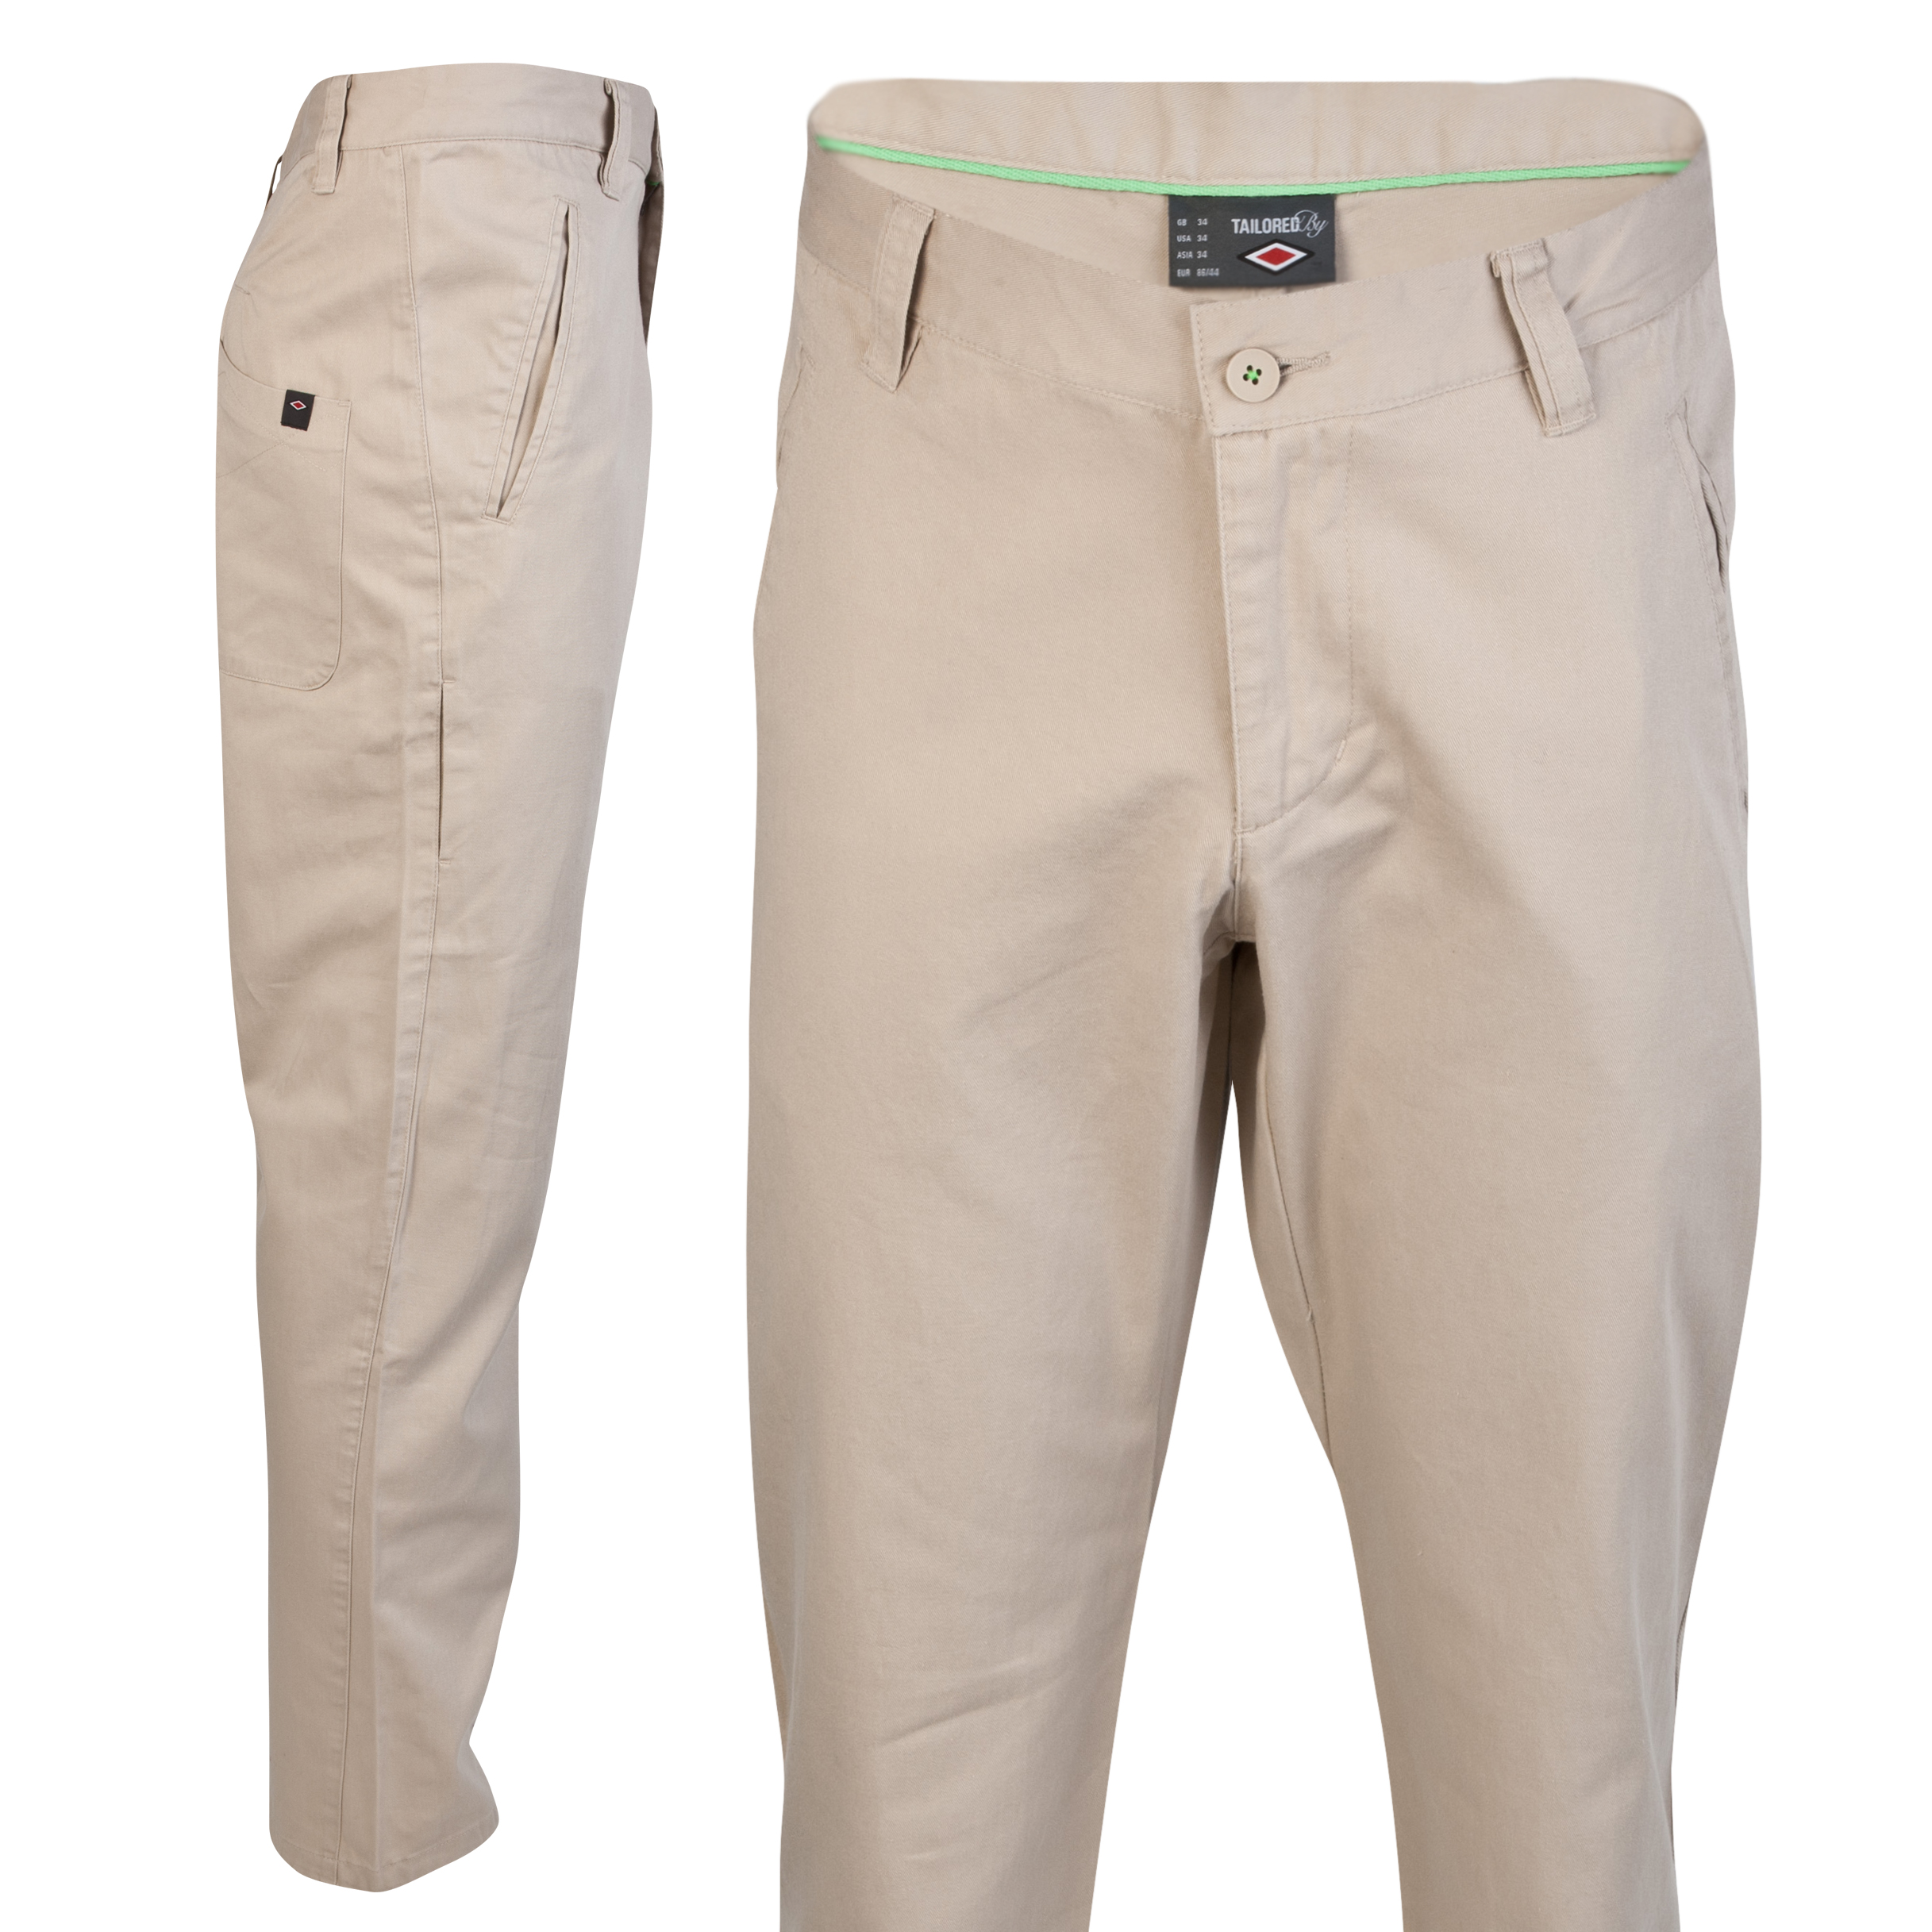 Umbro Articulated Woven Pant - Oxford Tan